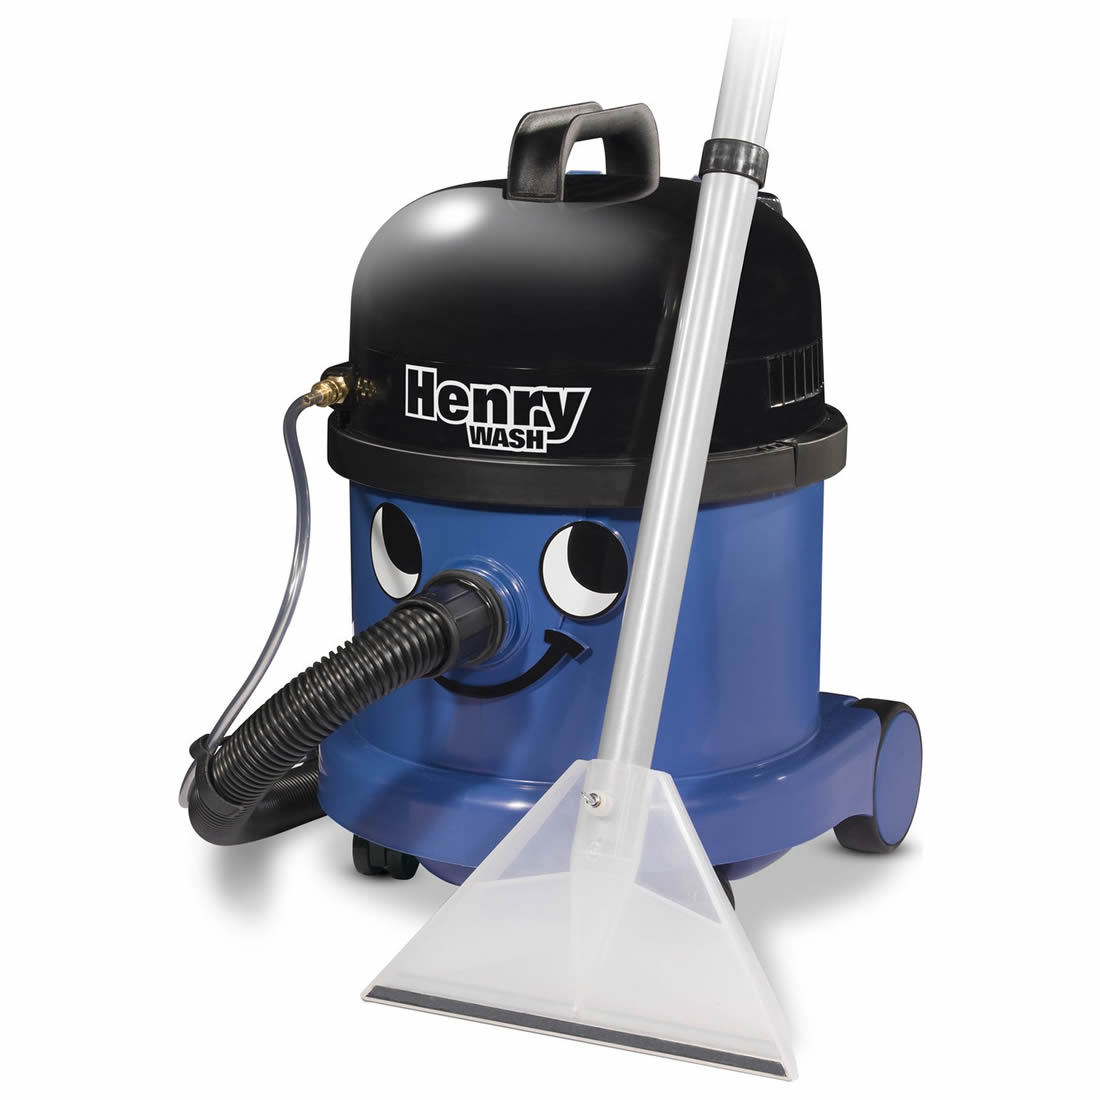 1060Watts Carpet Cleaner 9litre Capacity